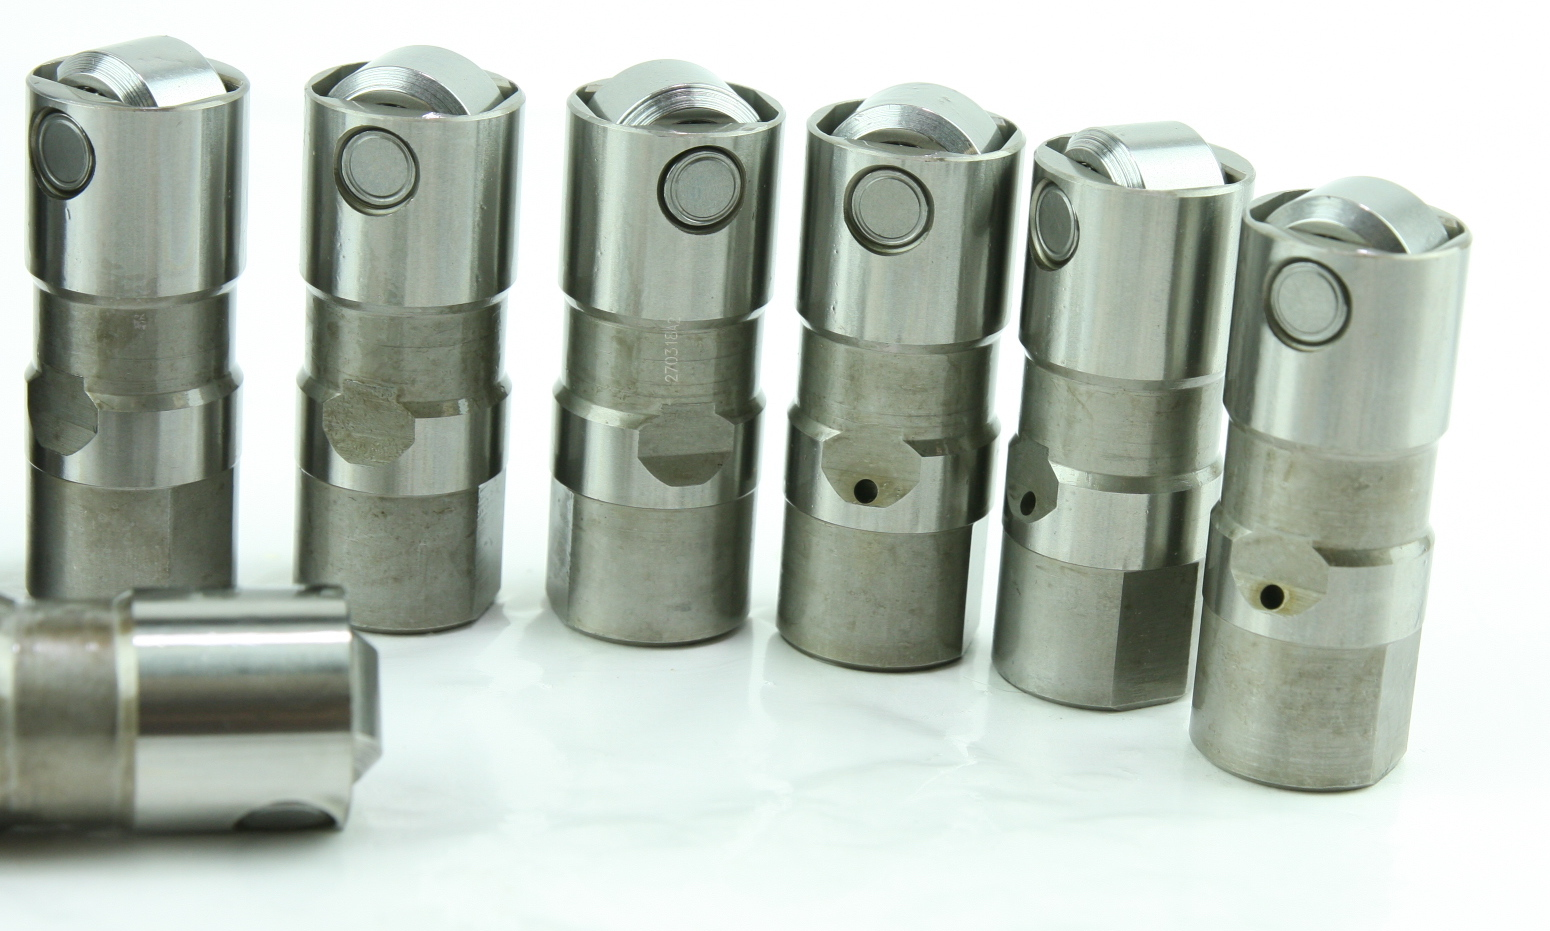 Set of 12 Genuine GM Roller Hydraulic Valve Lifters OEM 17120070 ACDelco HL118 - image 3